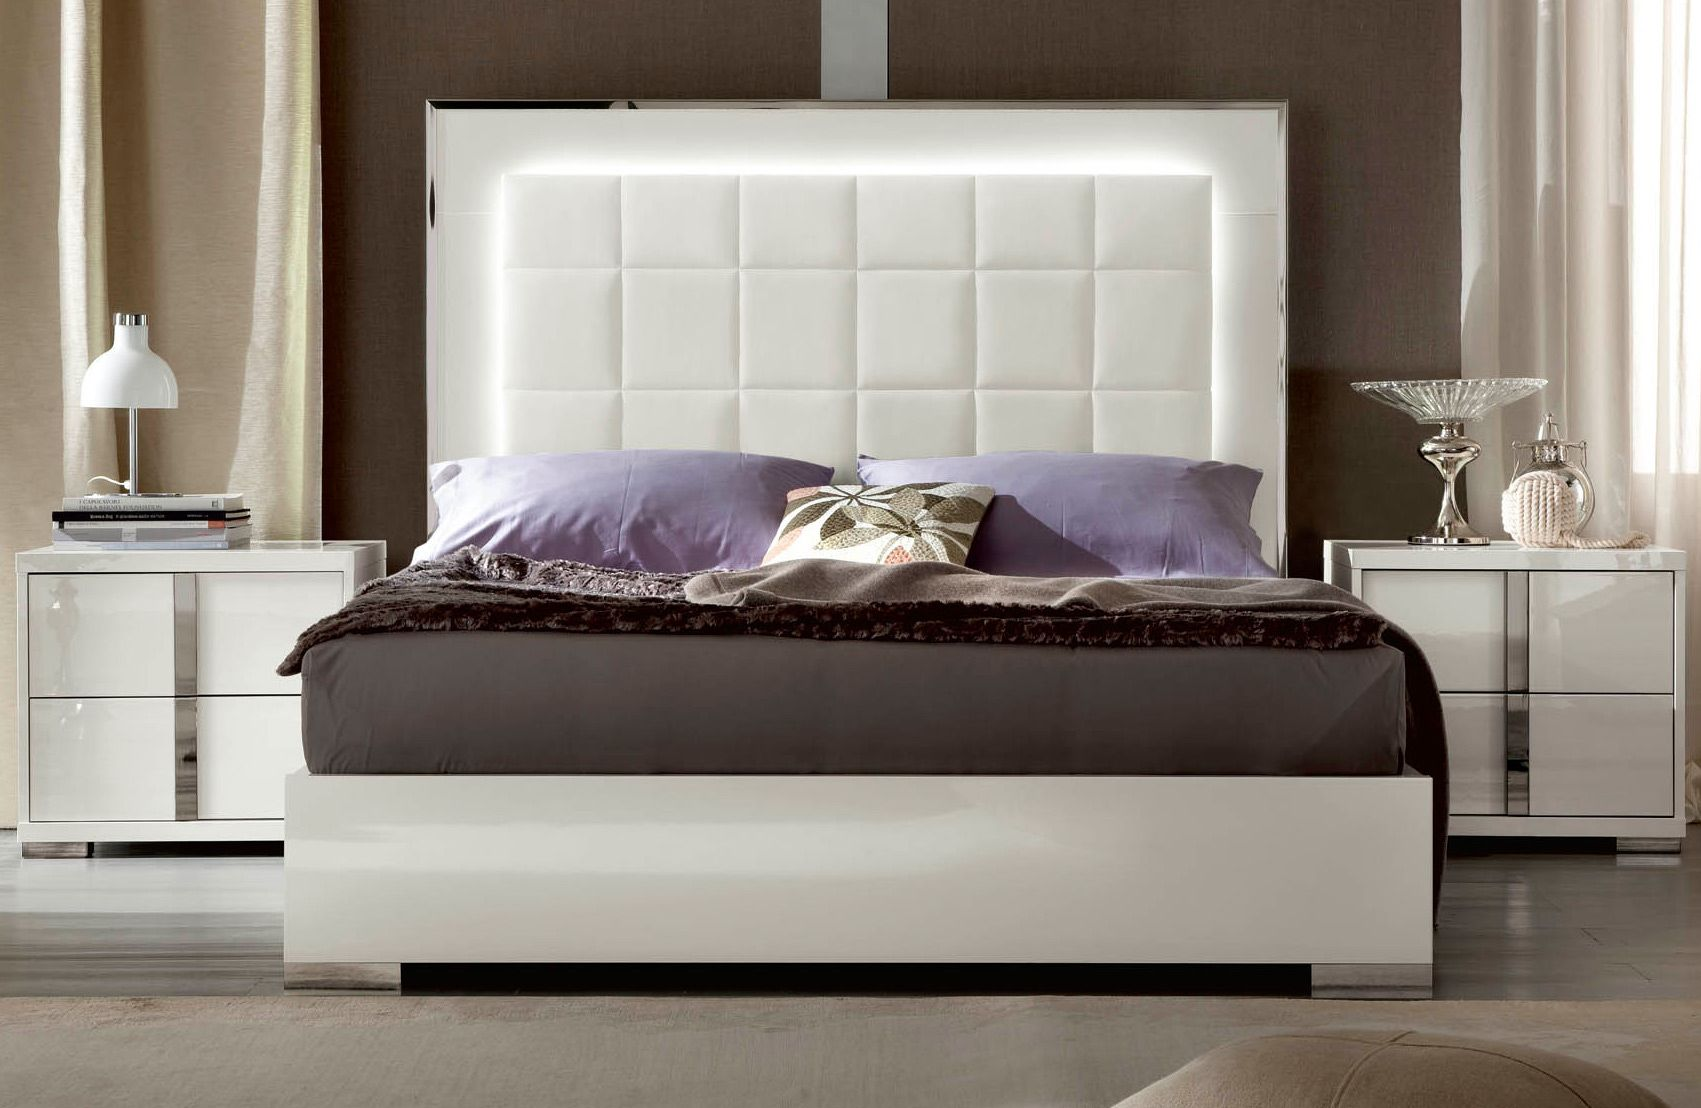 The Bella Bianca Bed Made In Italy Puts A Contemporary Twist On The Design Of The Classic White Gloss Bedroom Contemporary Bedroom Modern Bedroom Furniture